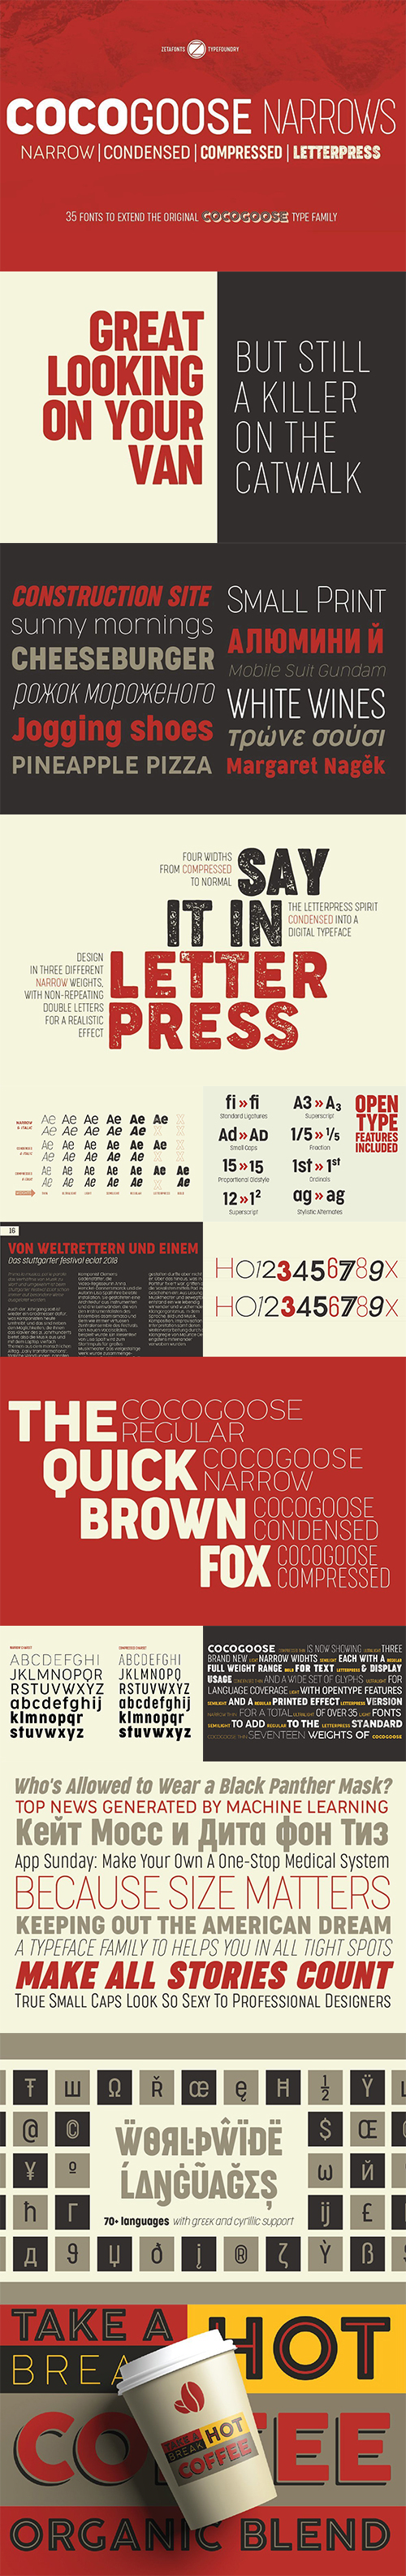 Cocogoose Narrows font family